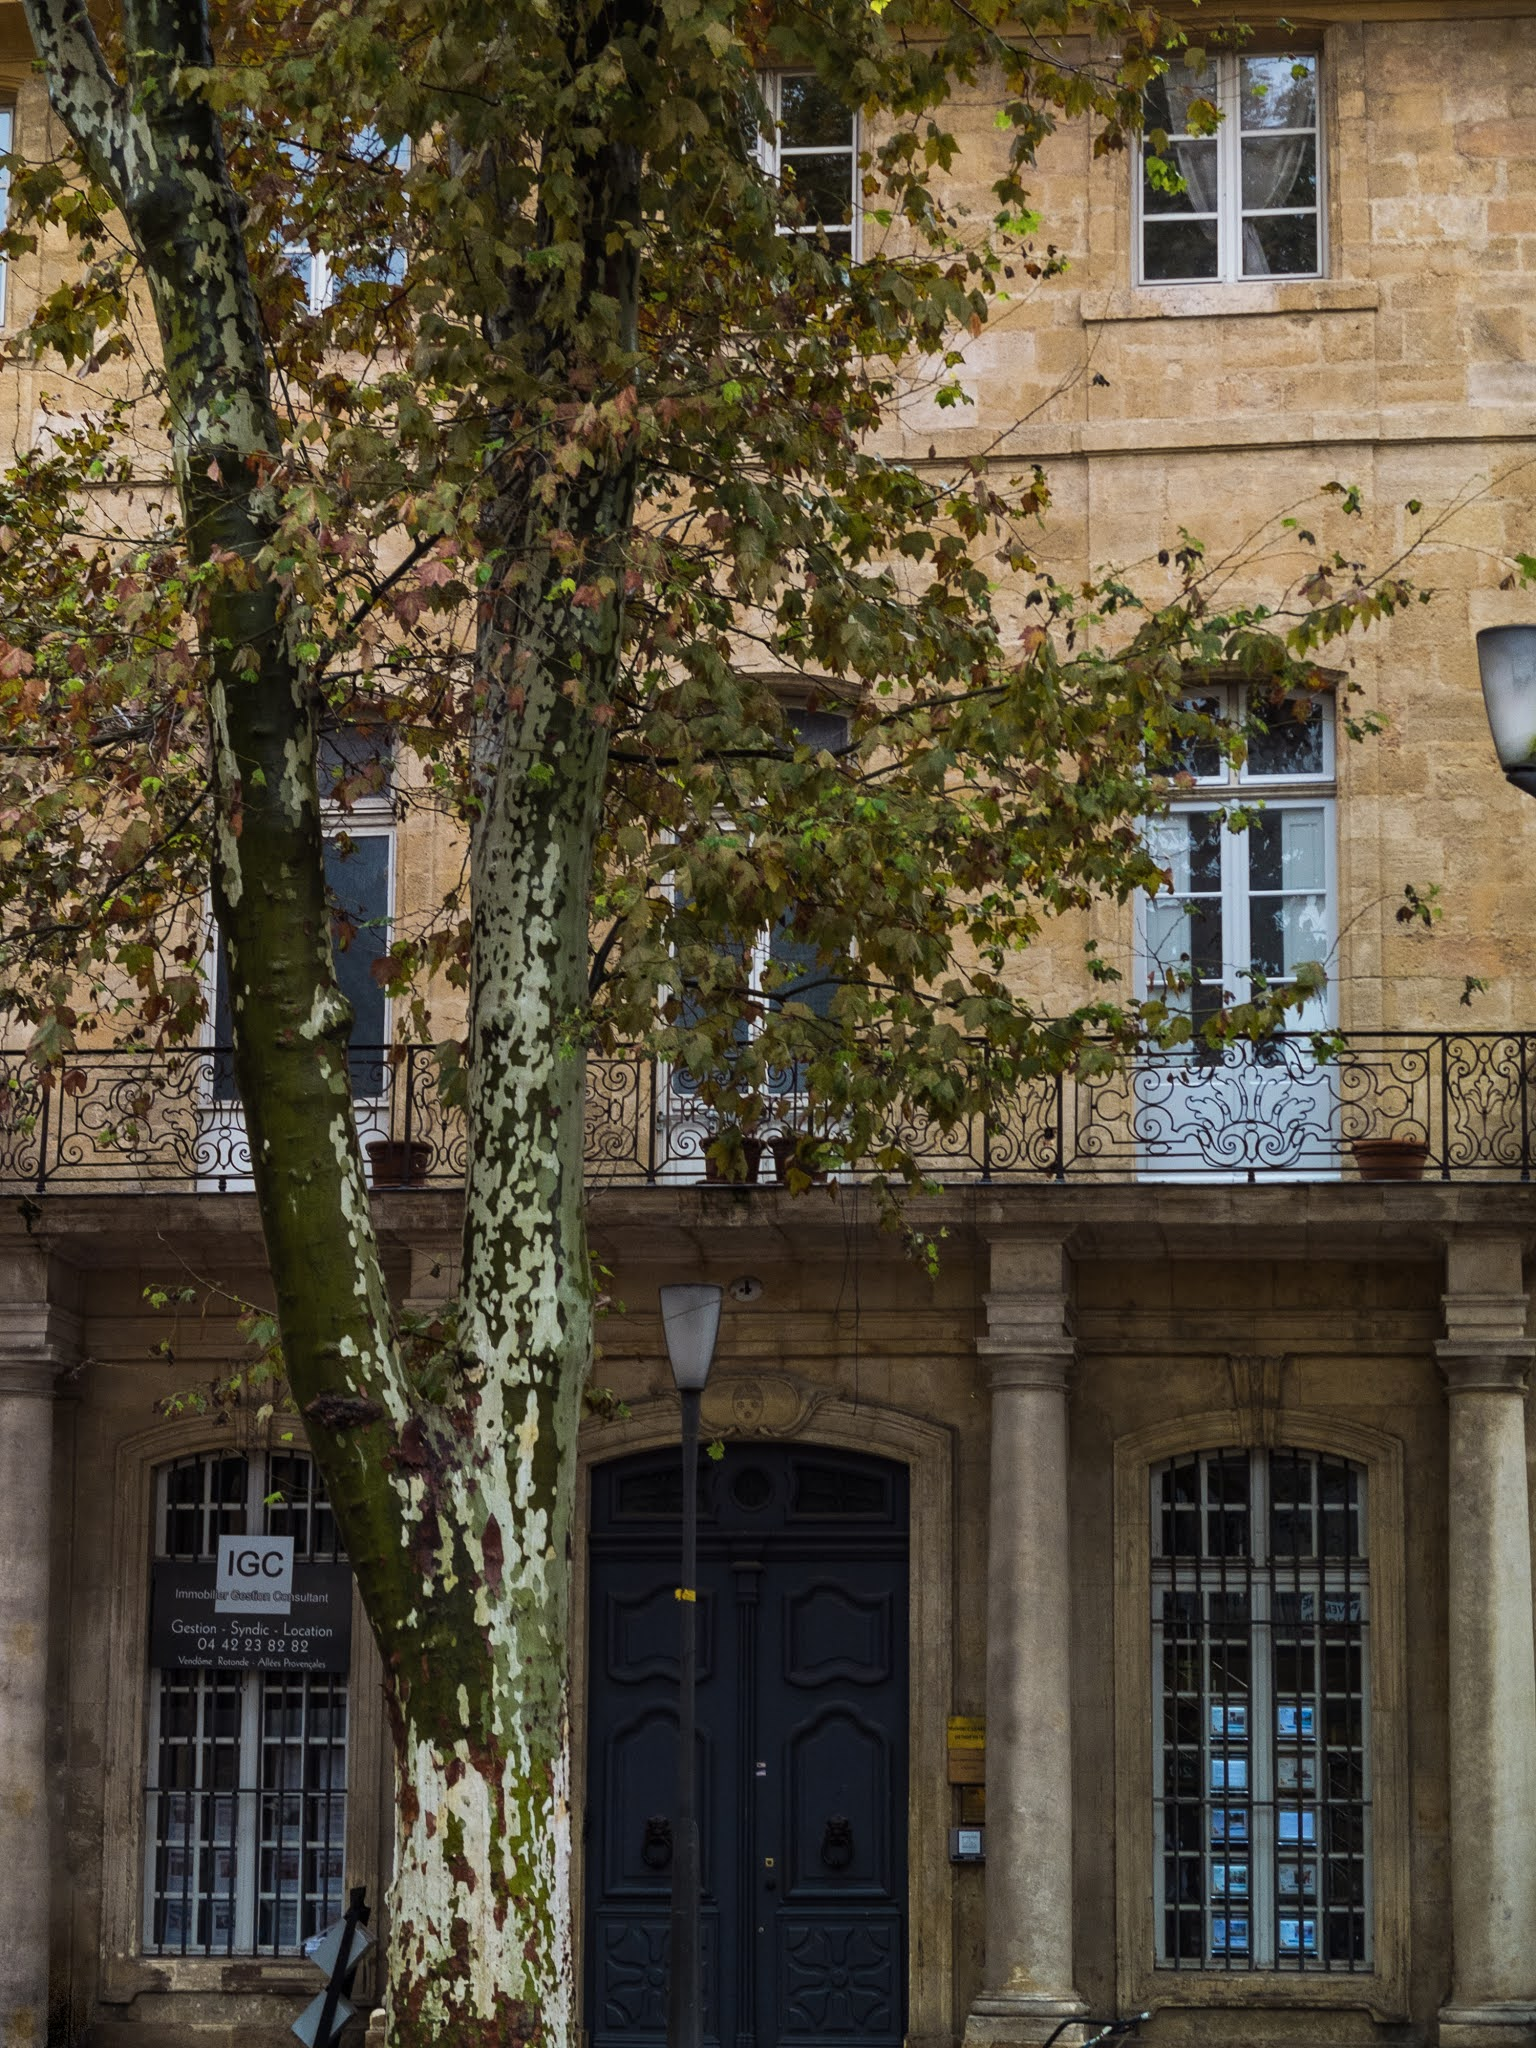 A plane tree outside a sandstone building on Cours Mirabeau in Aix-en-Provence.